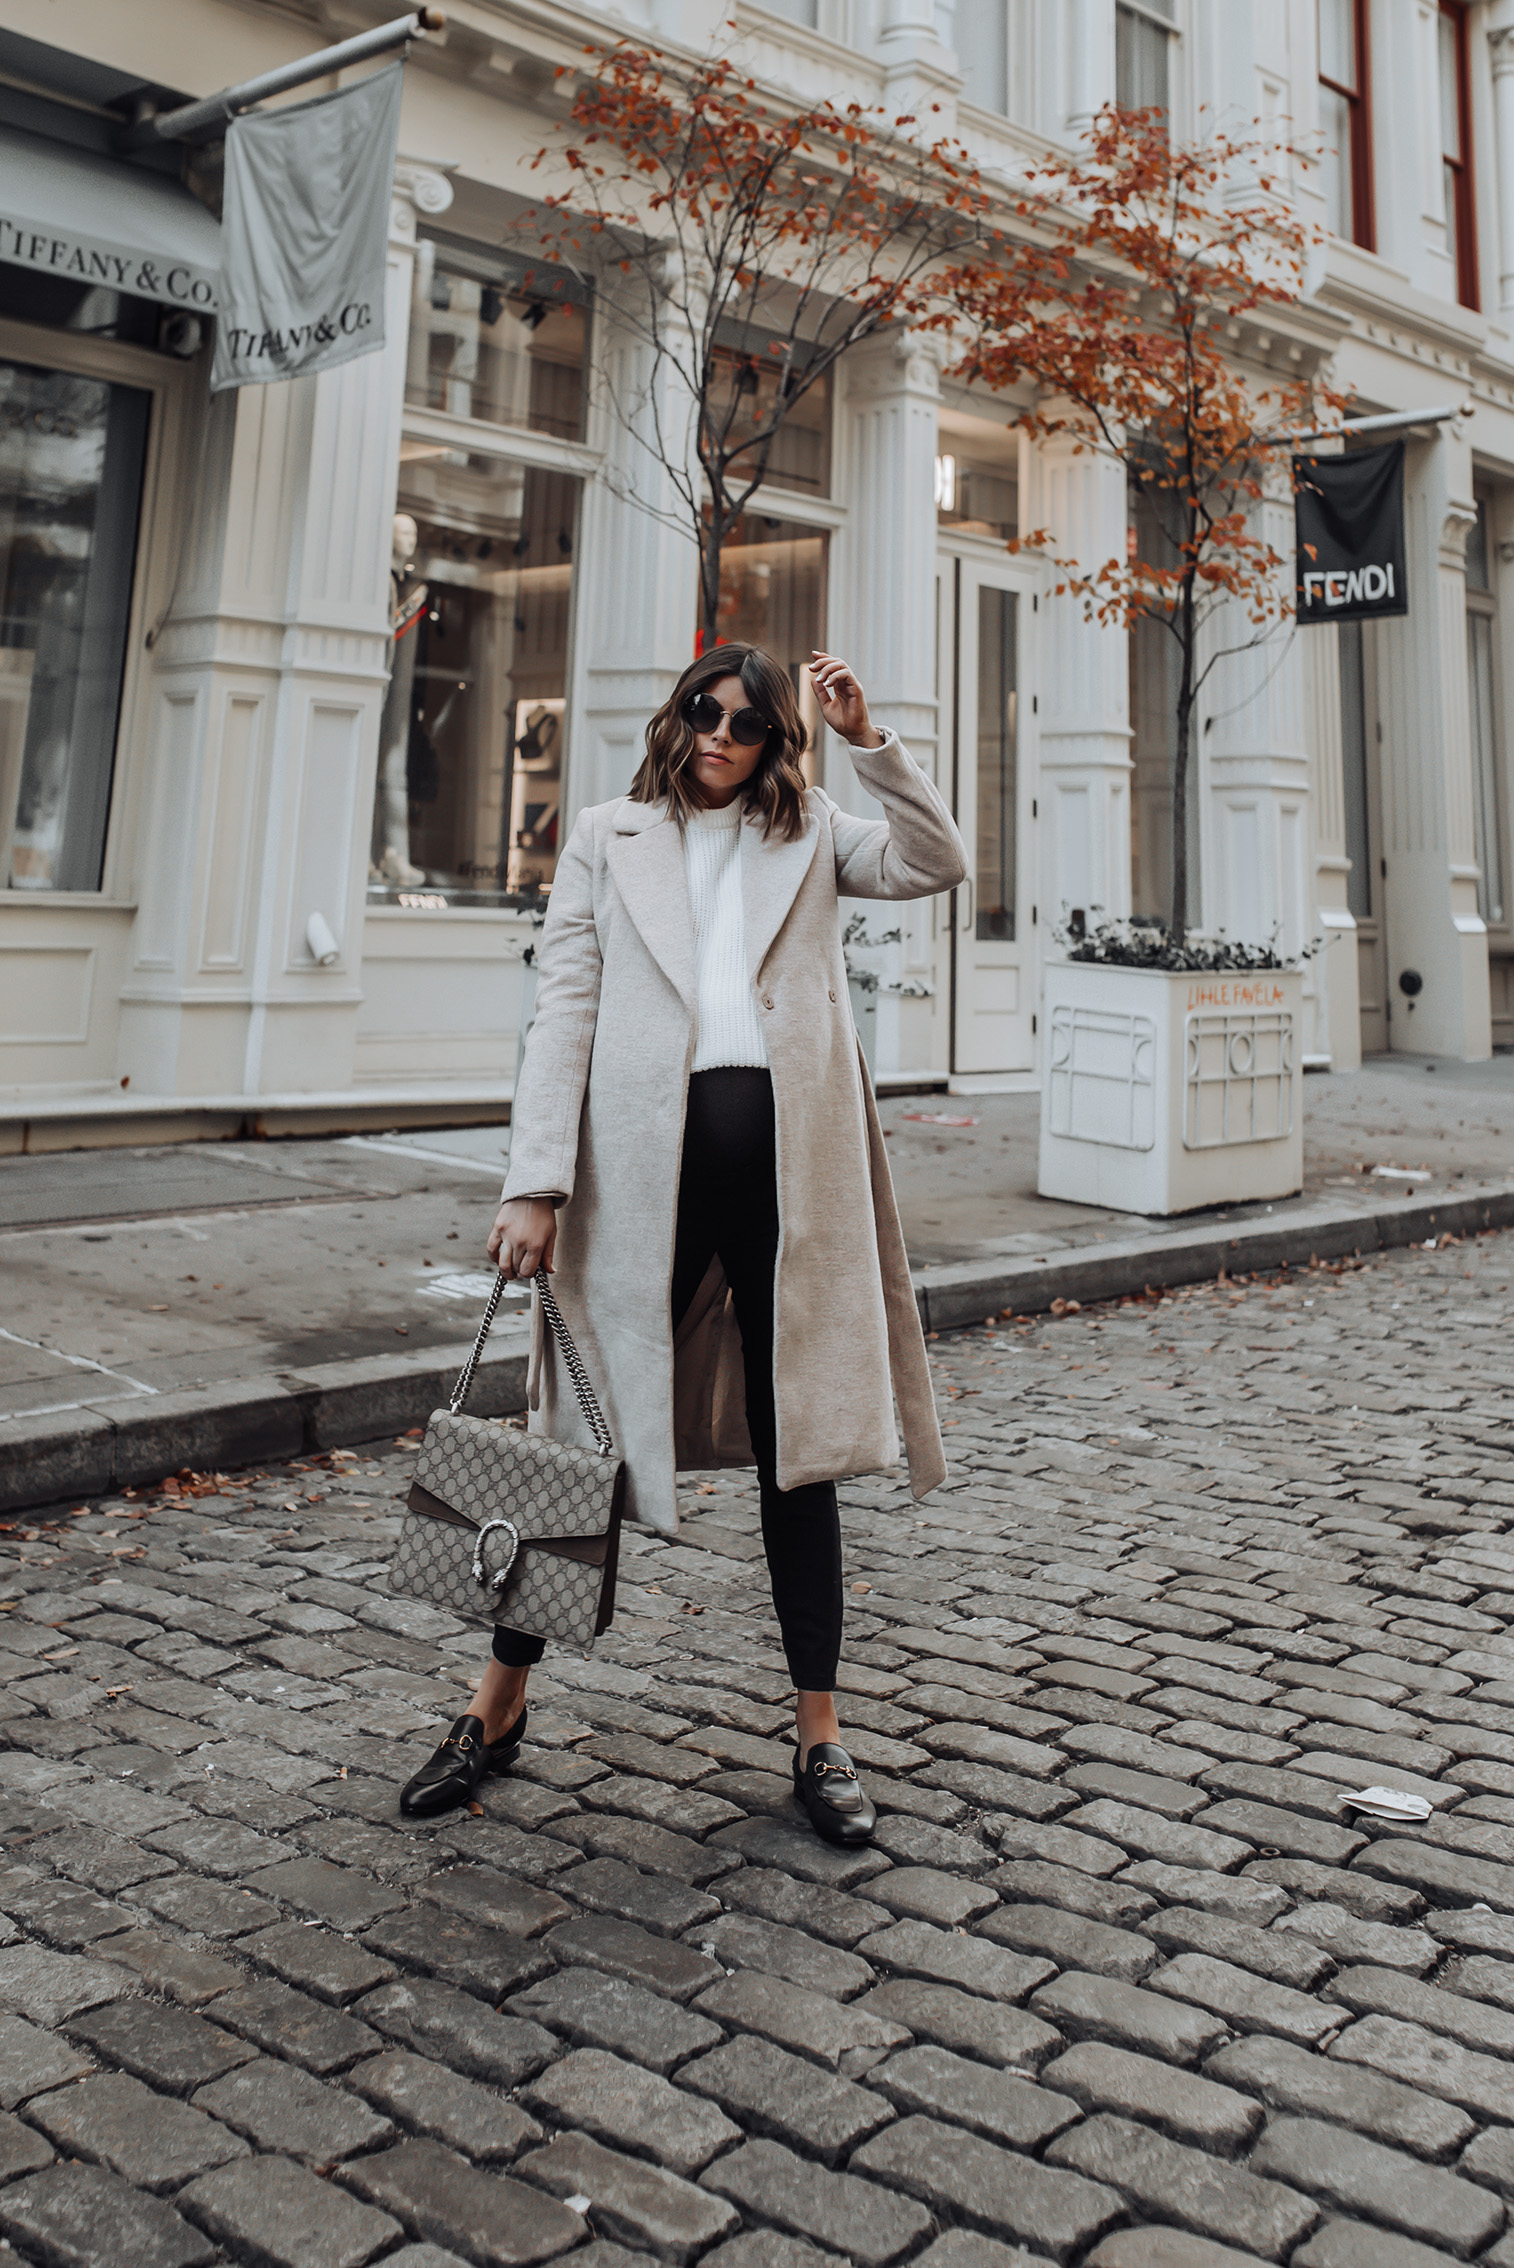 Neutral Tones |H&M Coat,Identical option here | Sweater | Gucci Bag | Gucci Princetown Shoes #gucci #liketkit #hm